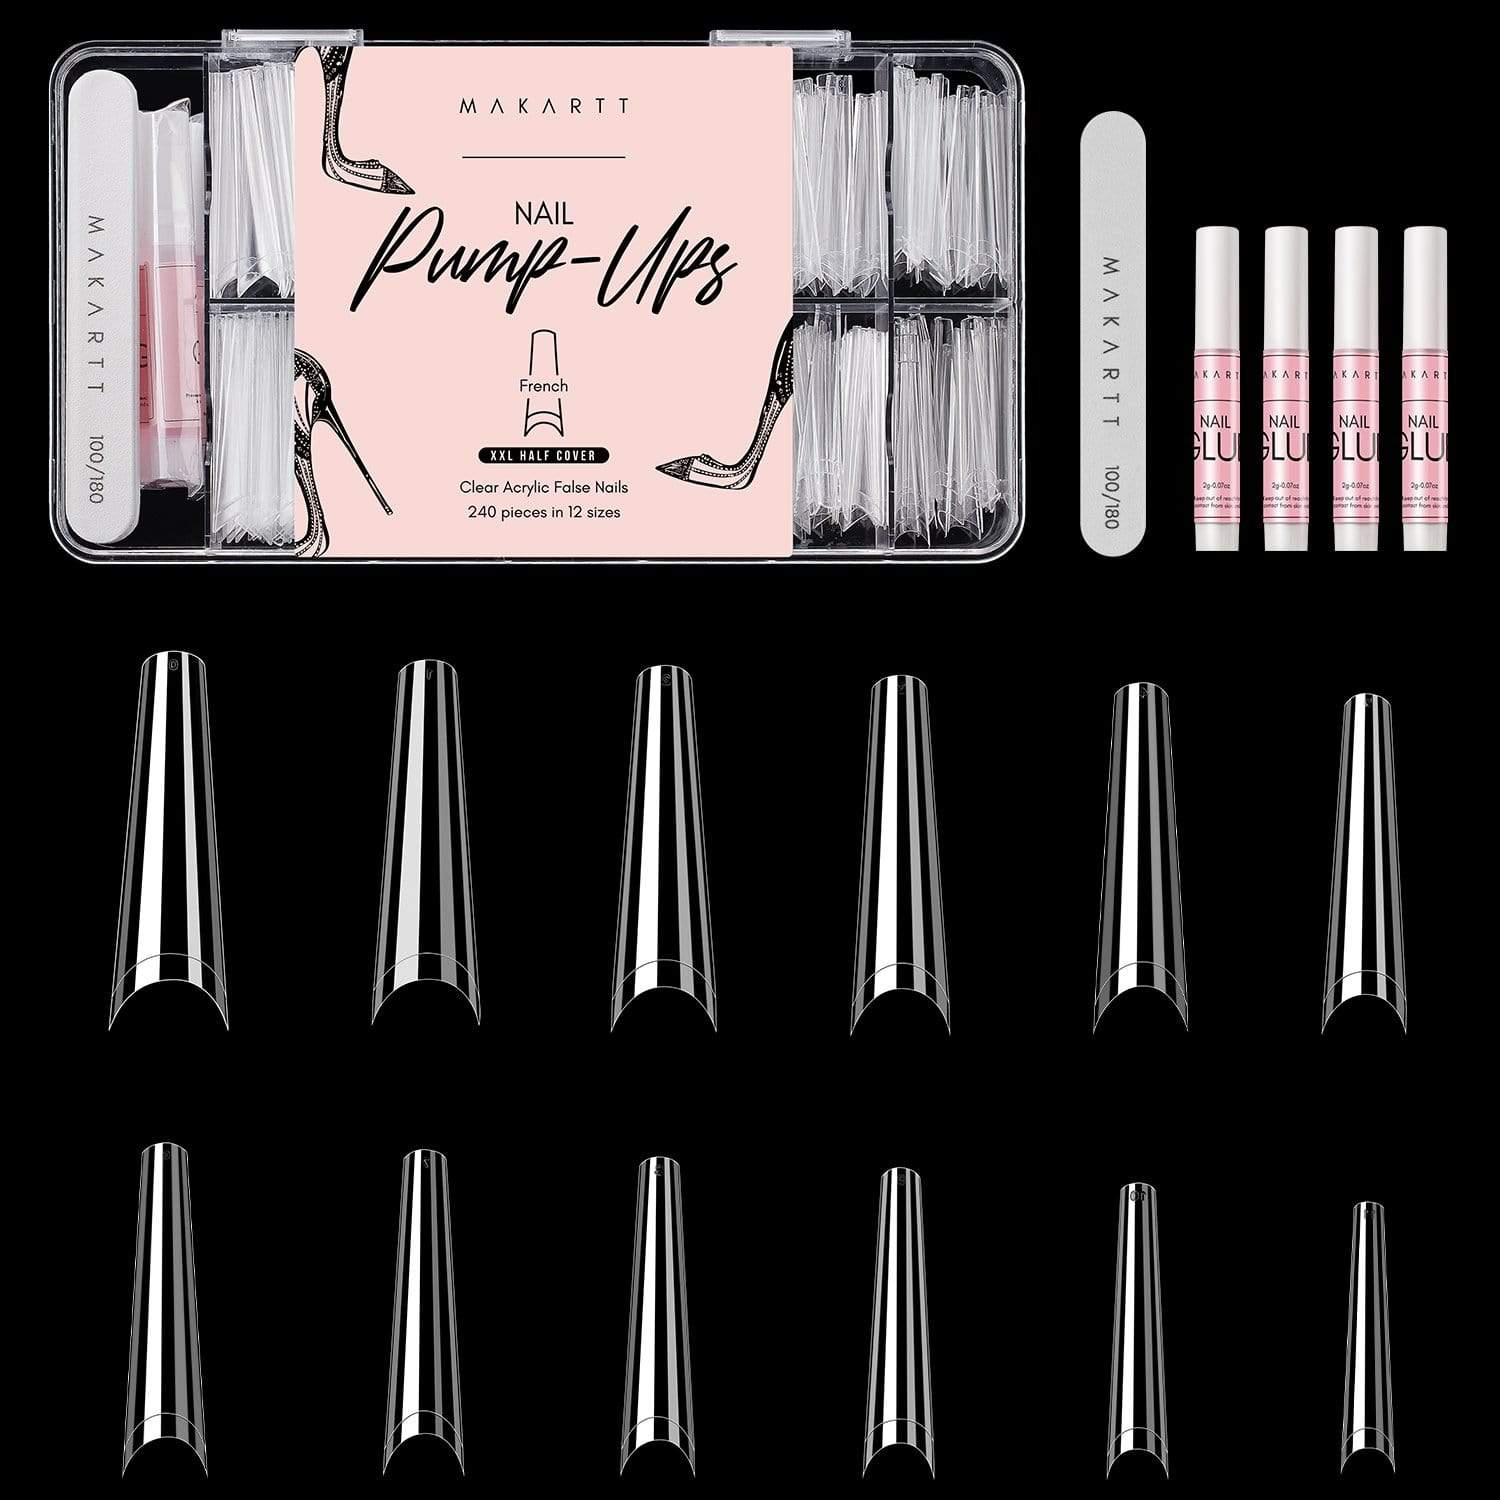 XXL Half Cover French Nail Tips Kit